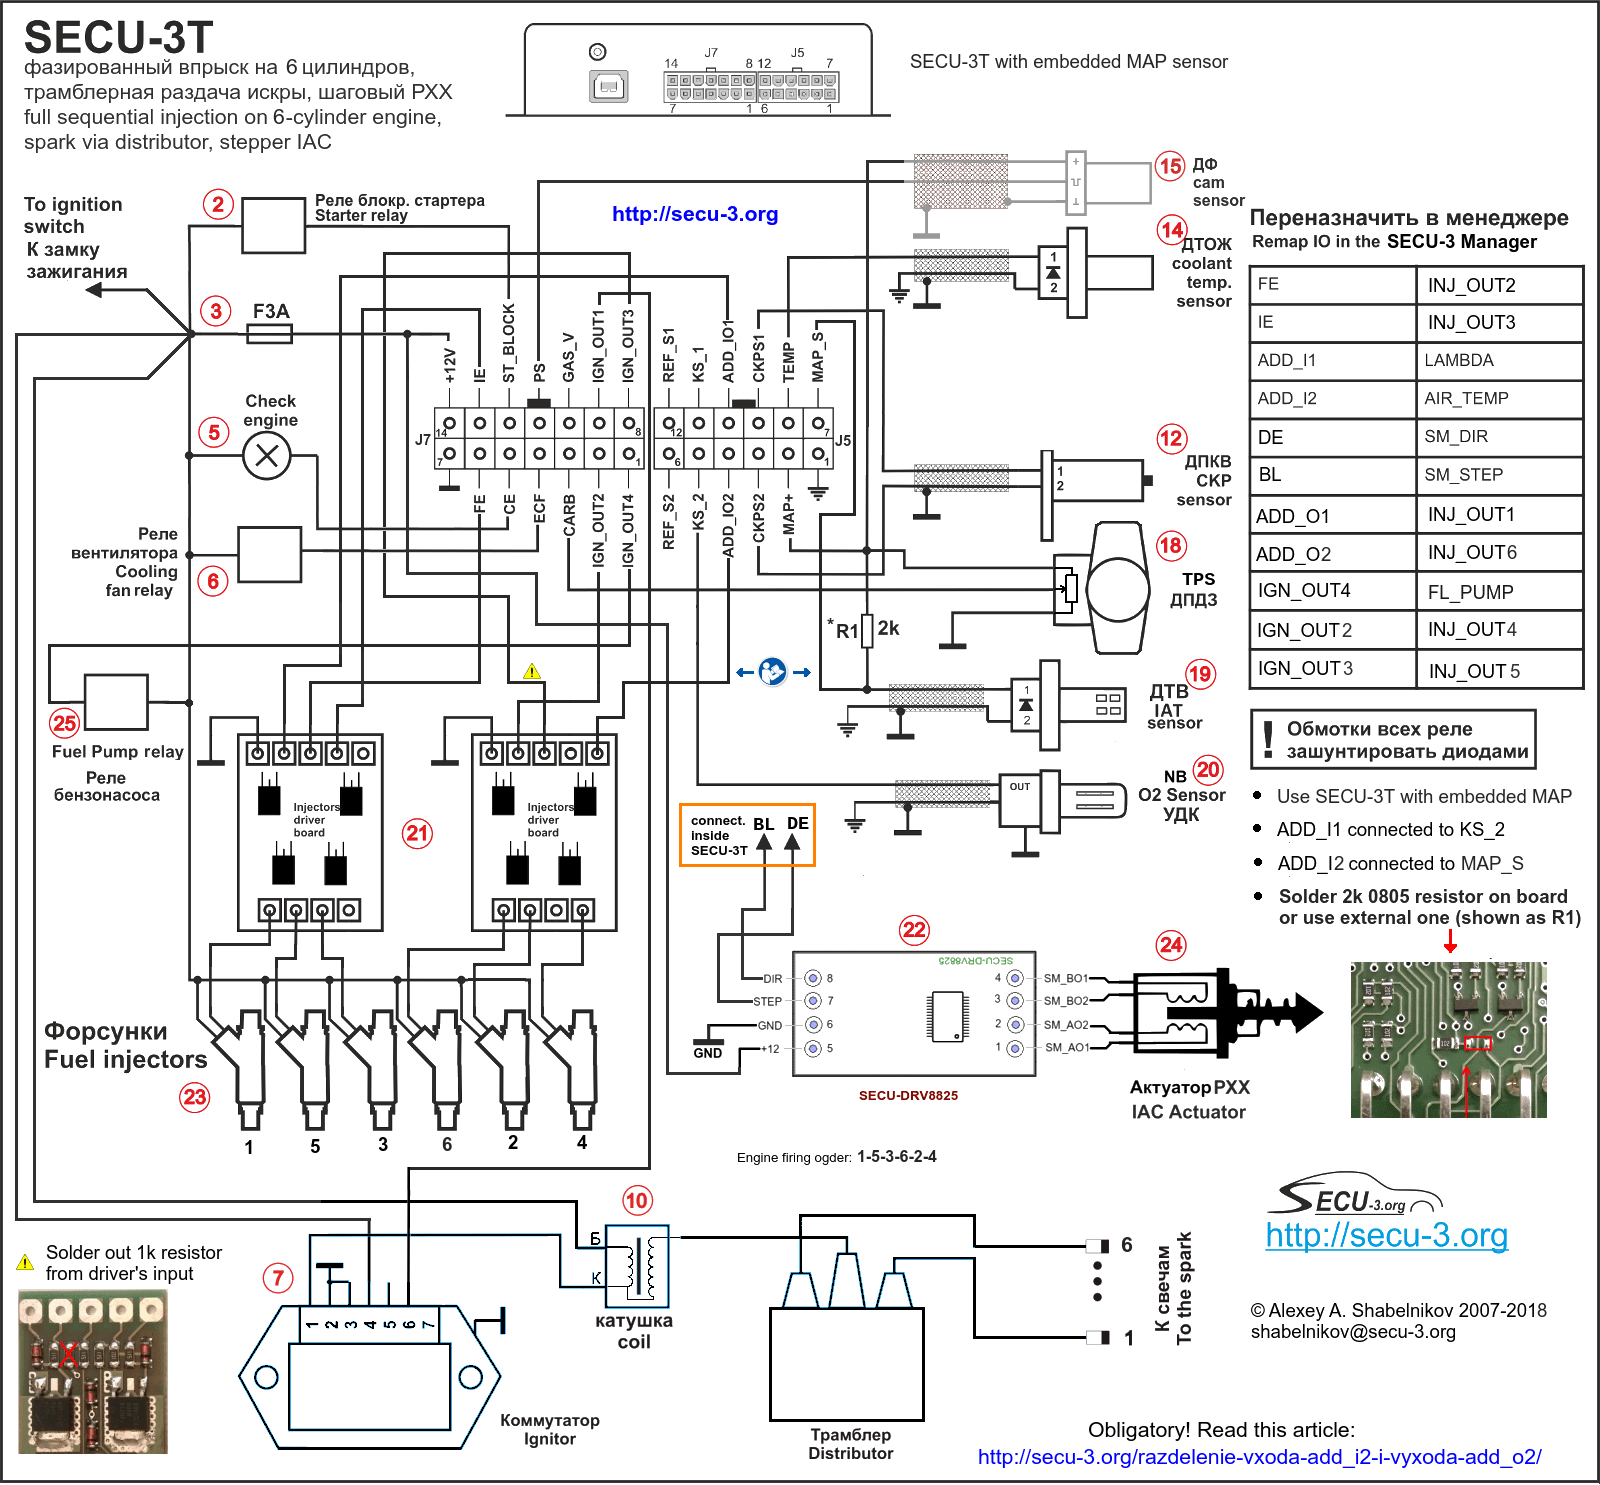 hight resolution of wiring diagrams for secu 3 units examples secu 3 ignition secu 3t full